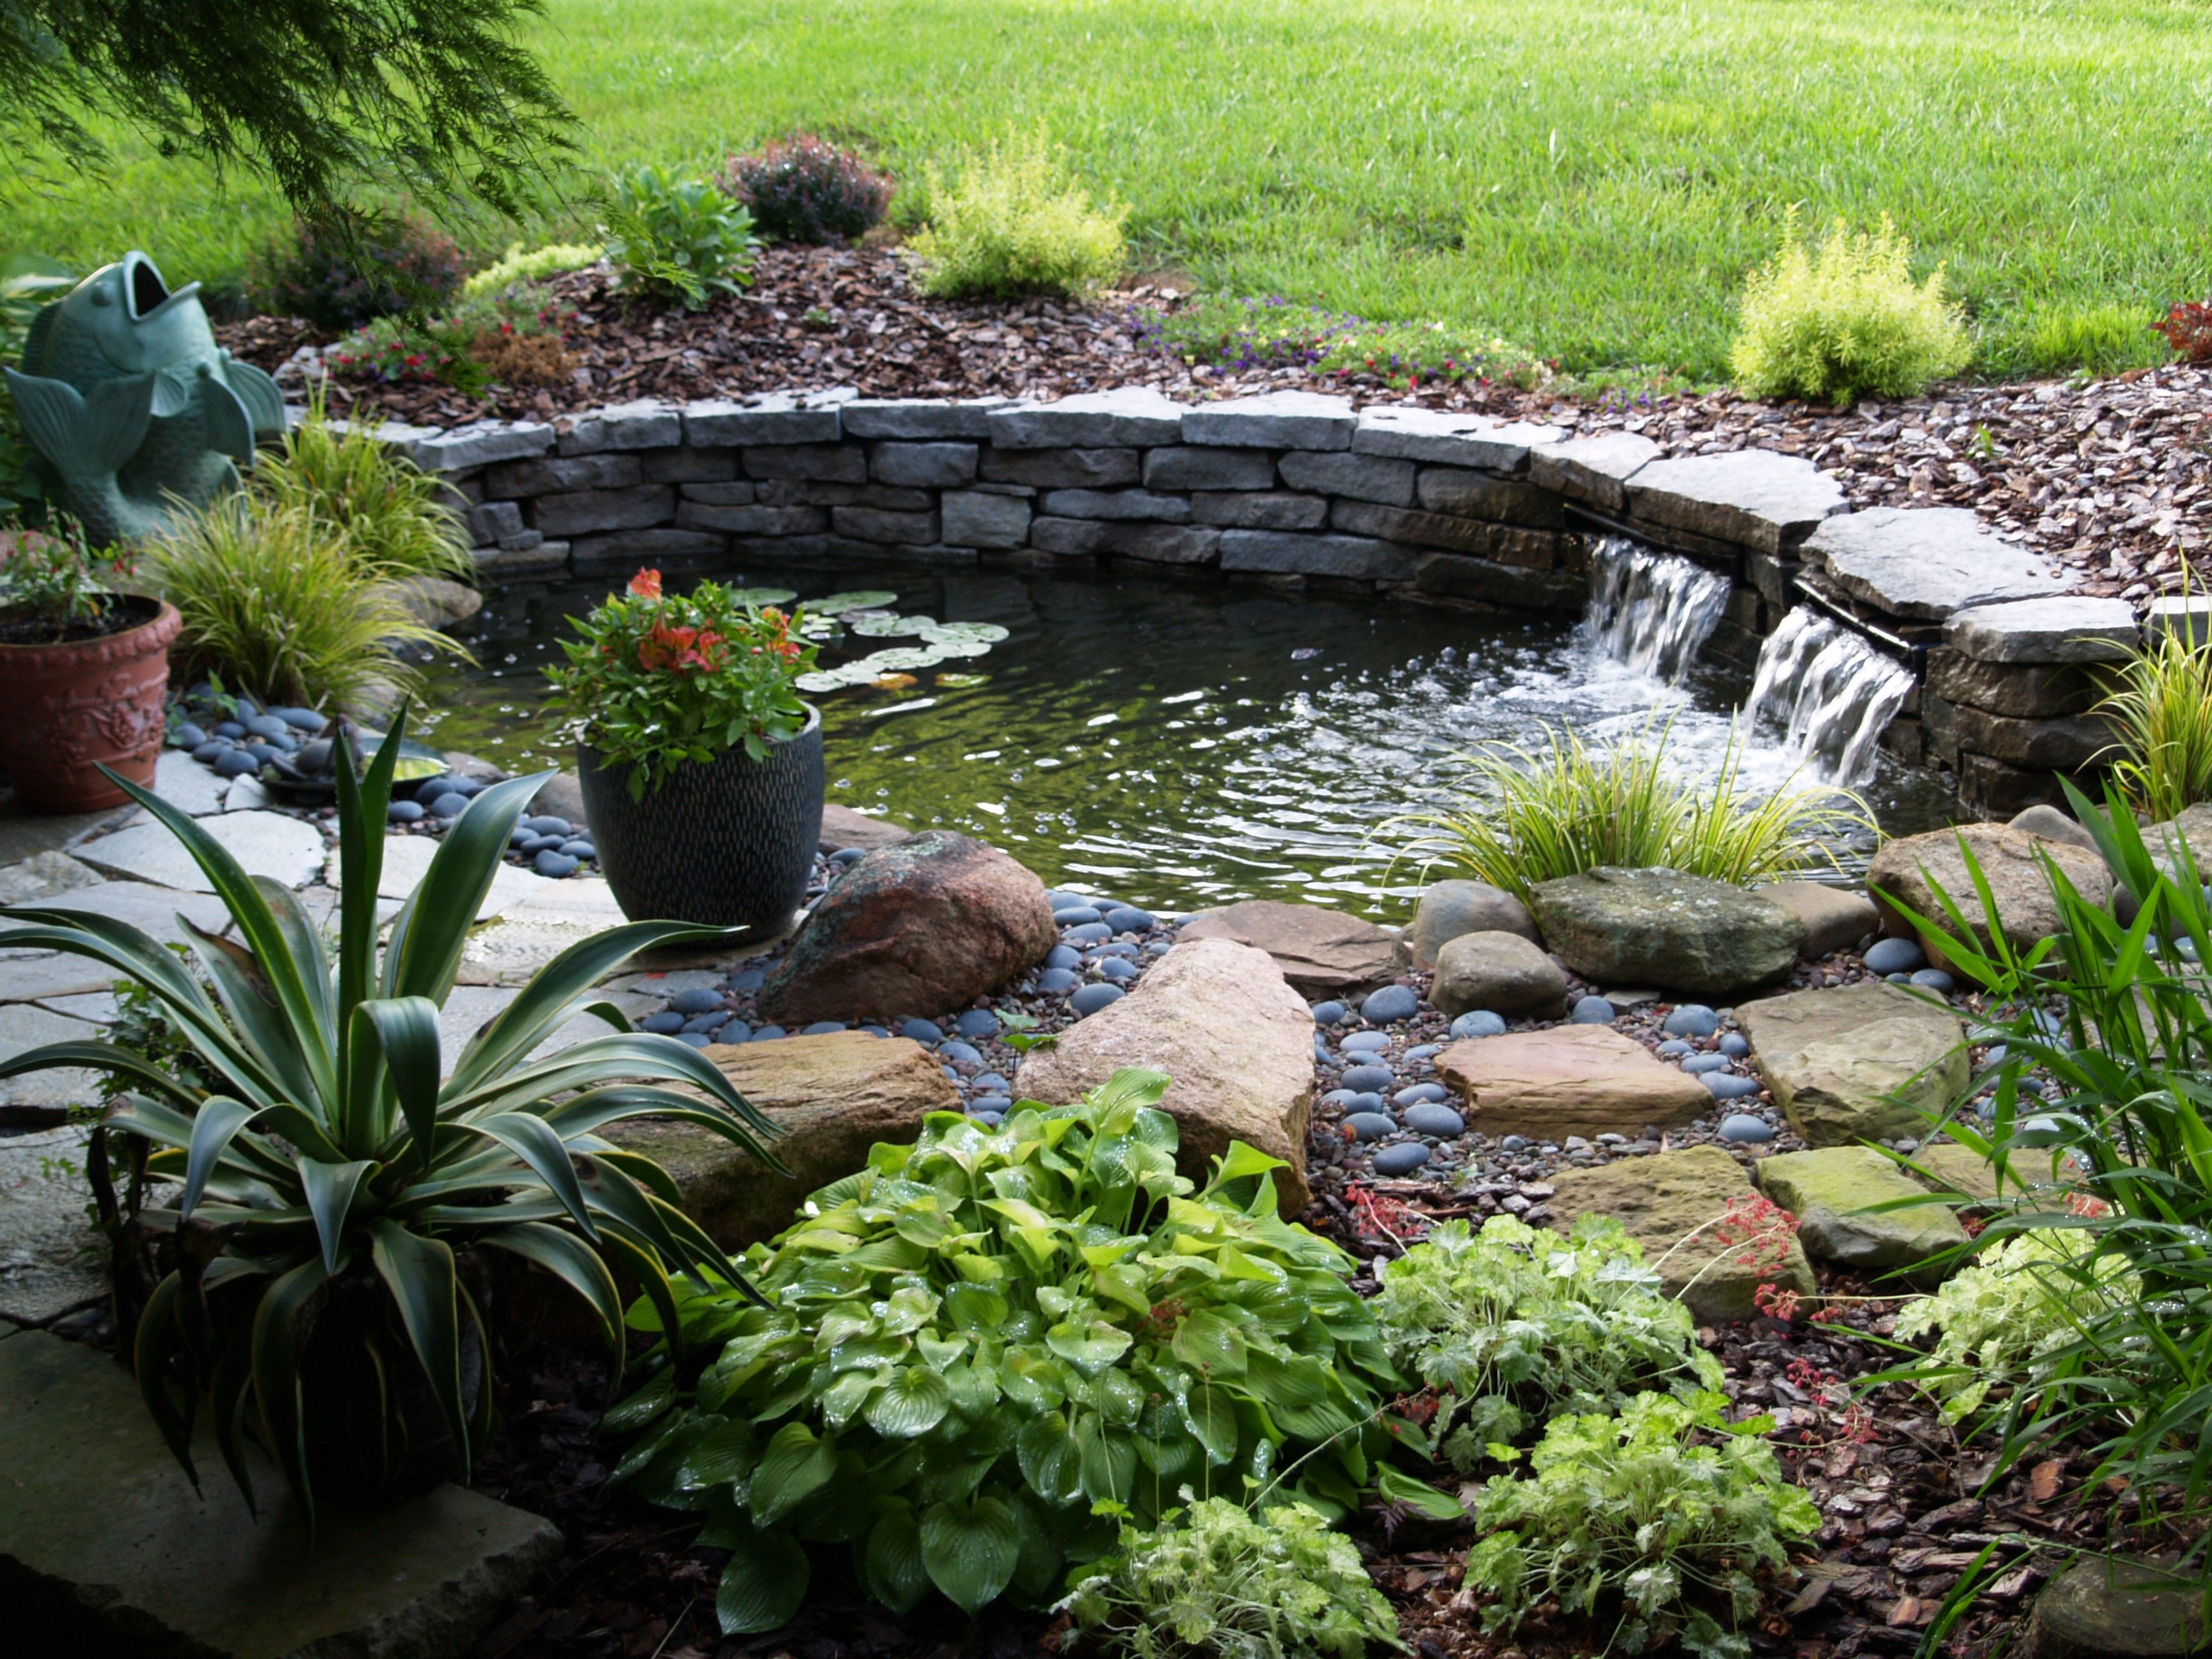 Cool Backyard Fish Pond Design Ideas Modern Interior Decorating Ideas For Awesome And Freshen